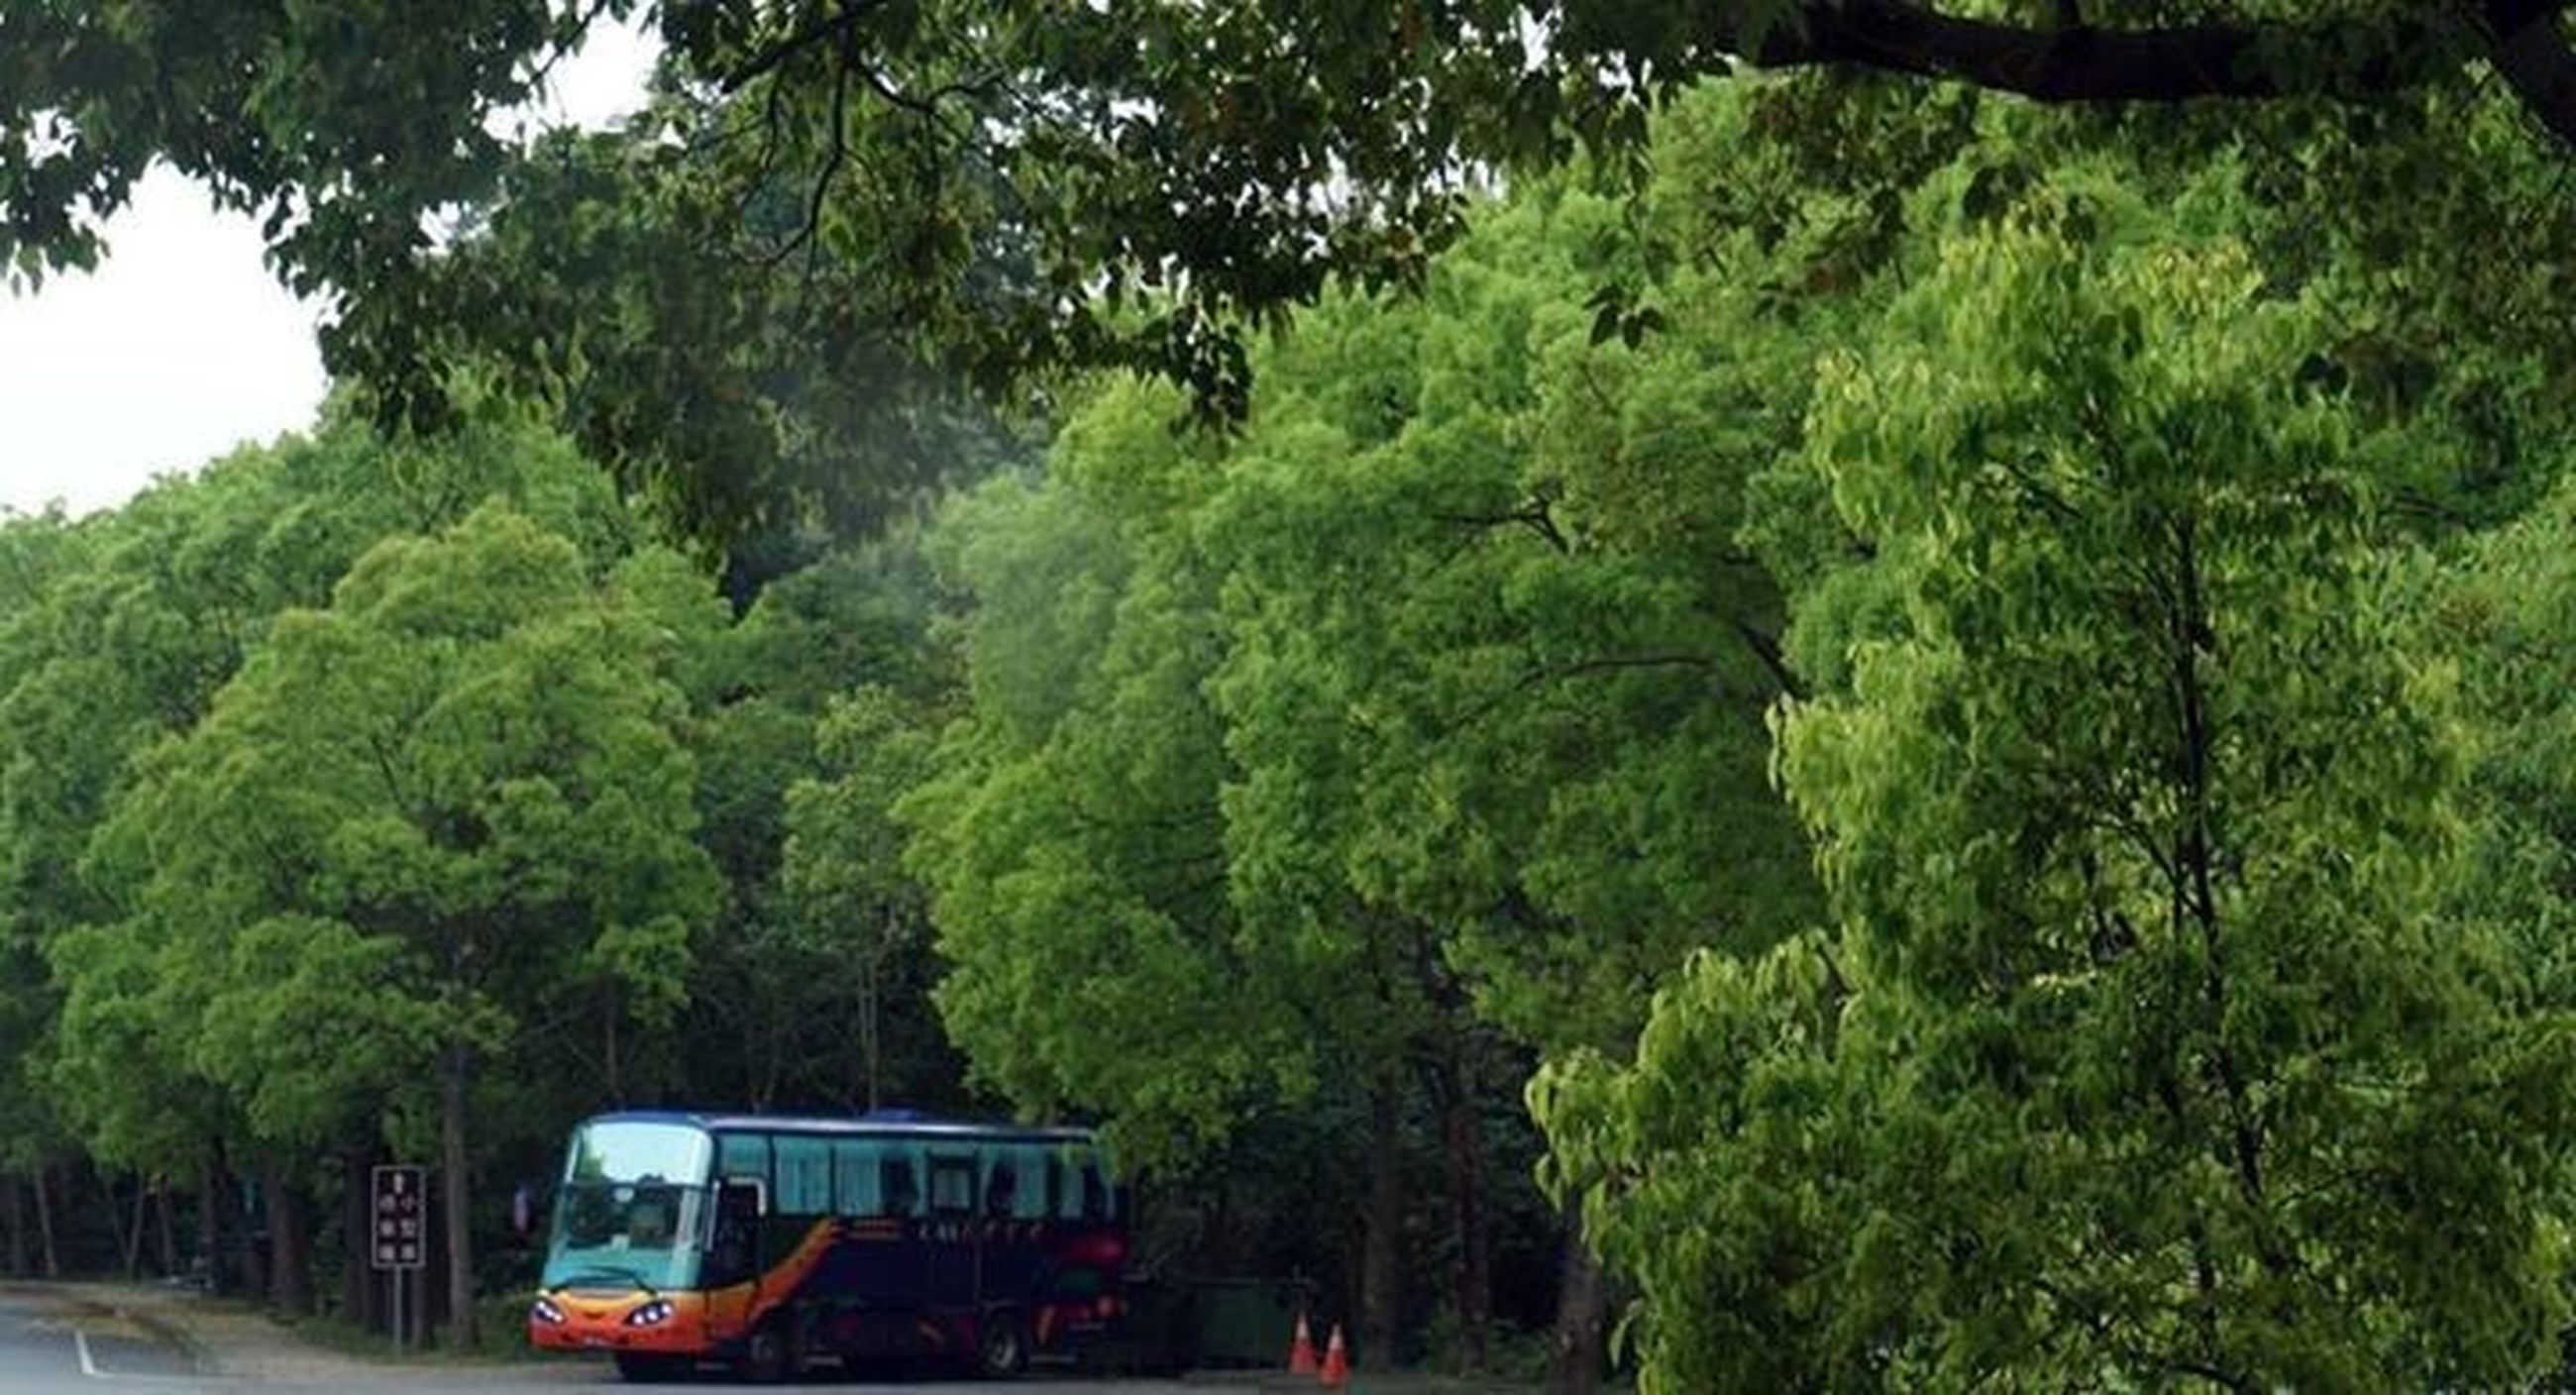 tree, transportation, mode of transport, land vehicle, car, green color, growth, road, nature, forest, travel, on the move, lush foliage, day, outdoors, tranquility, street, no people, beauty in nature, high angle view